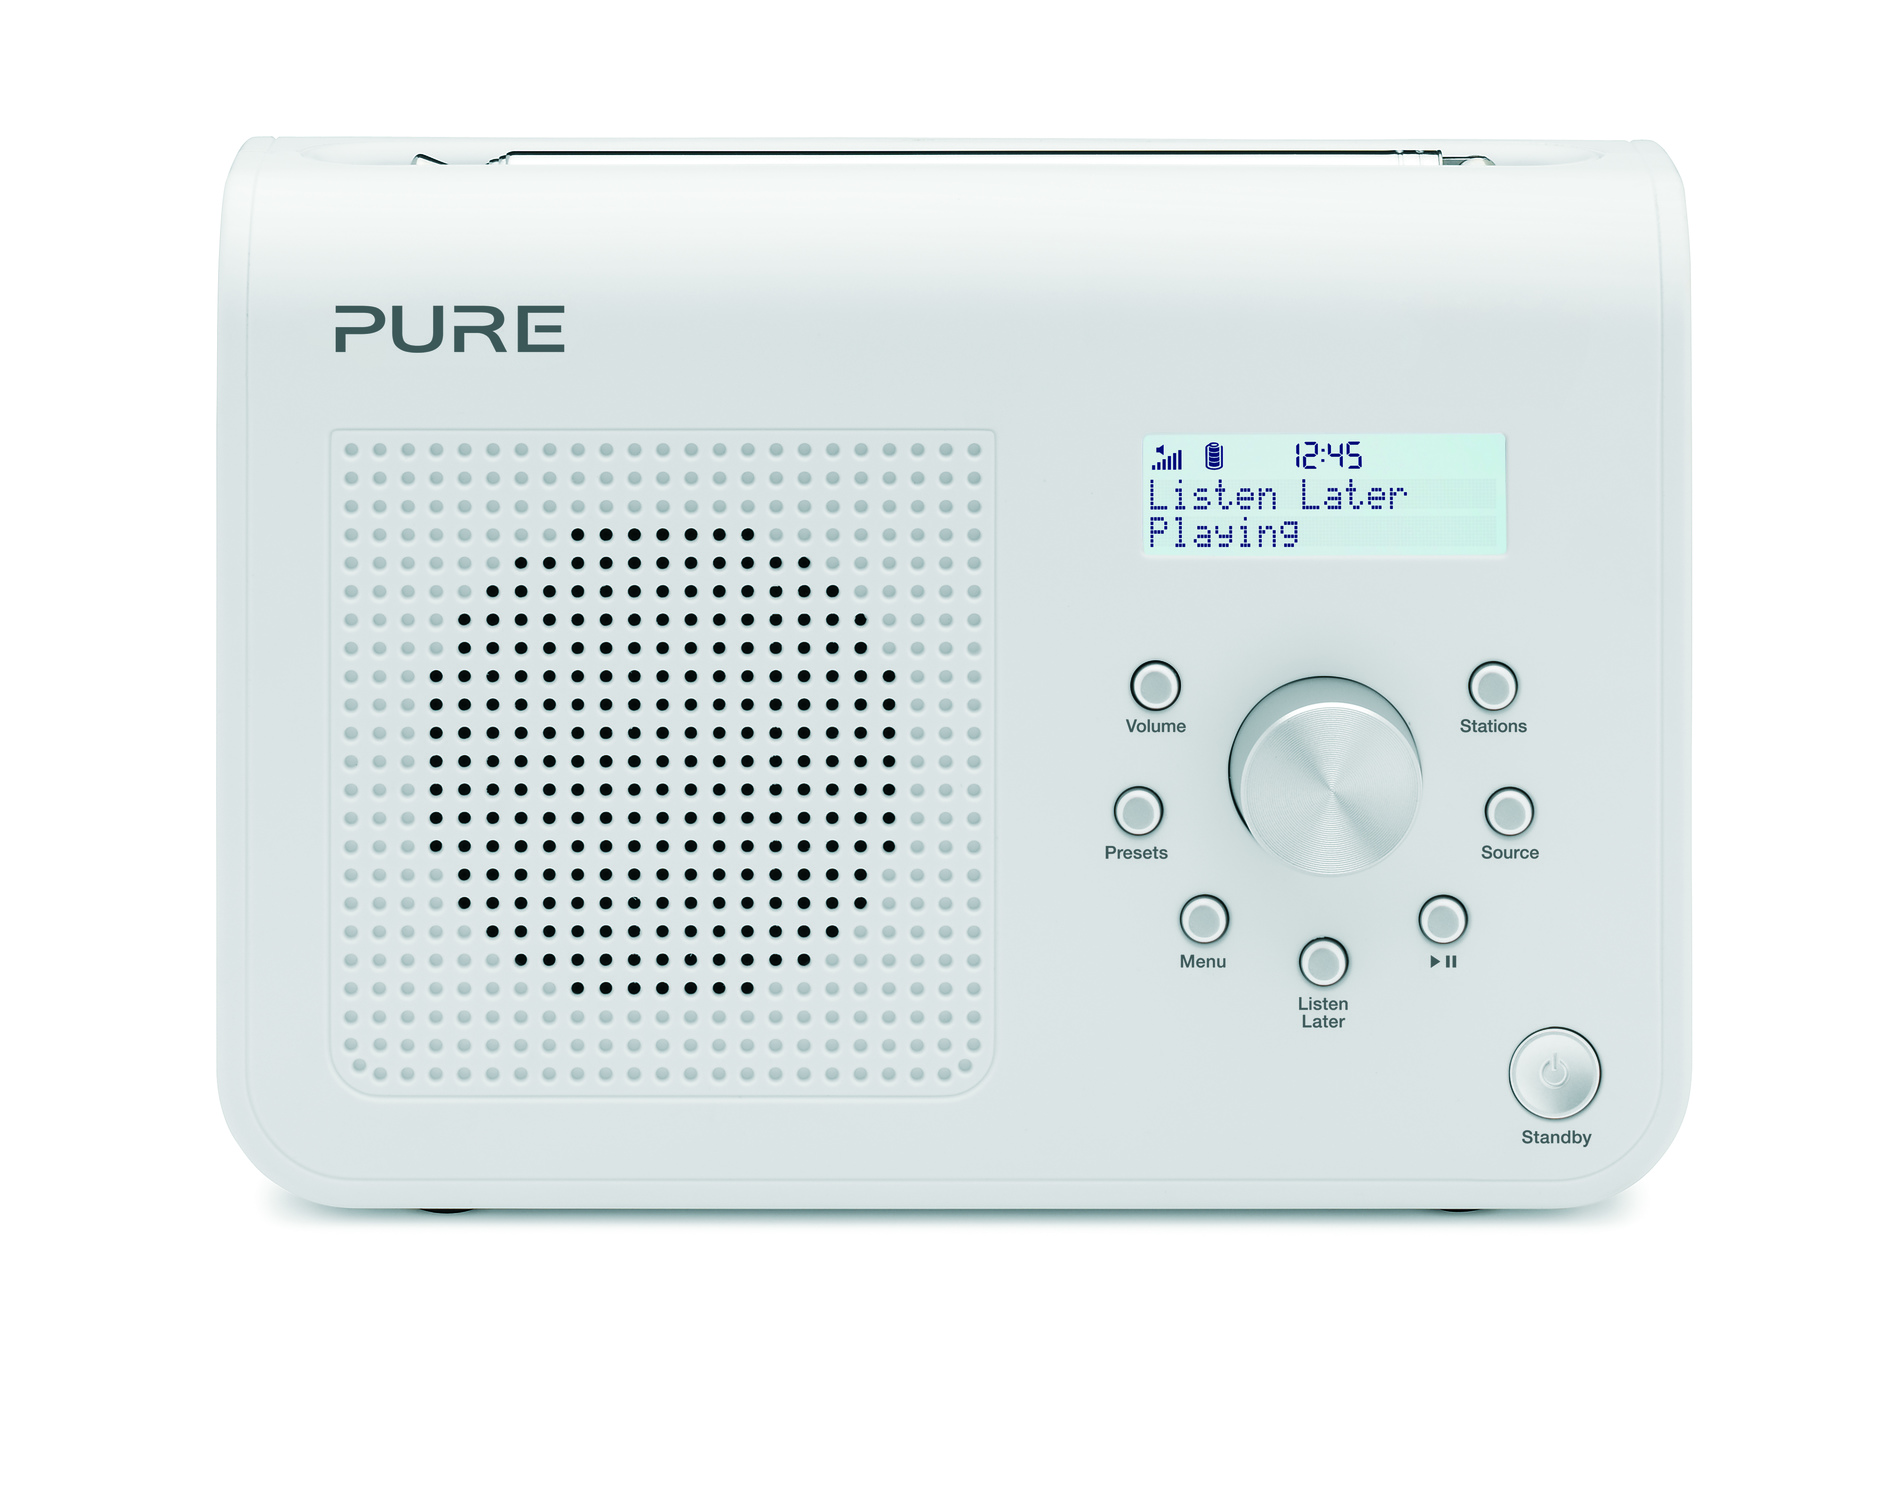 Pure One Classic Series 2 Wit